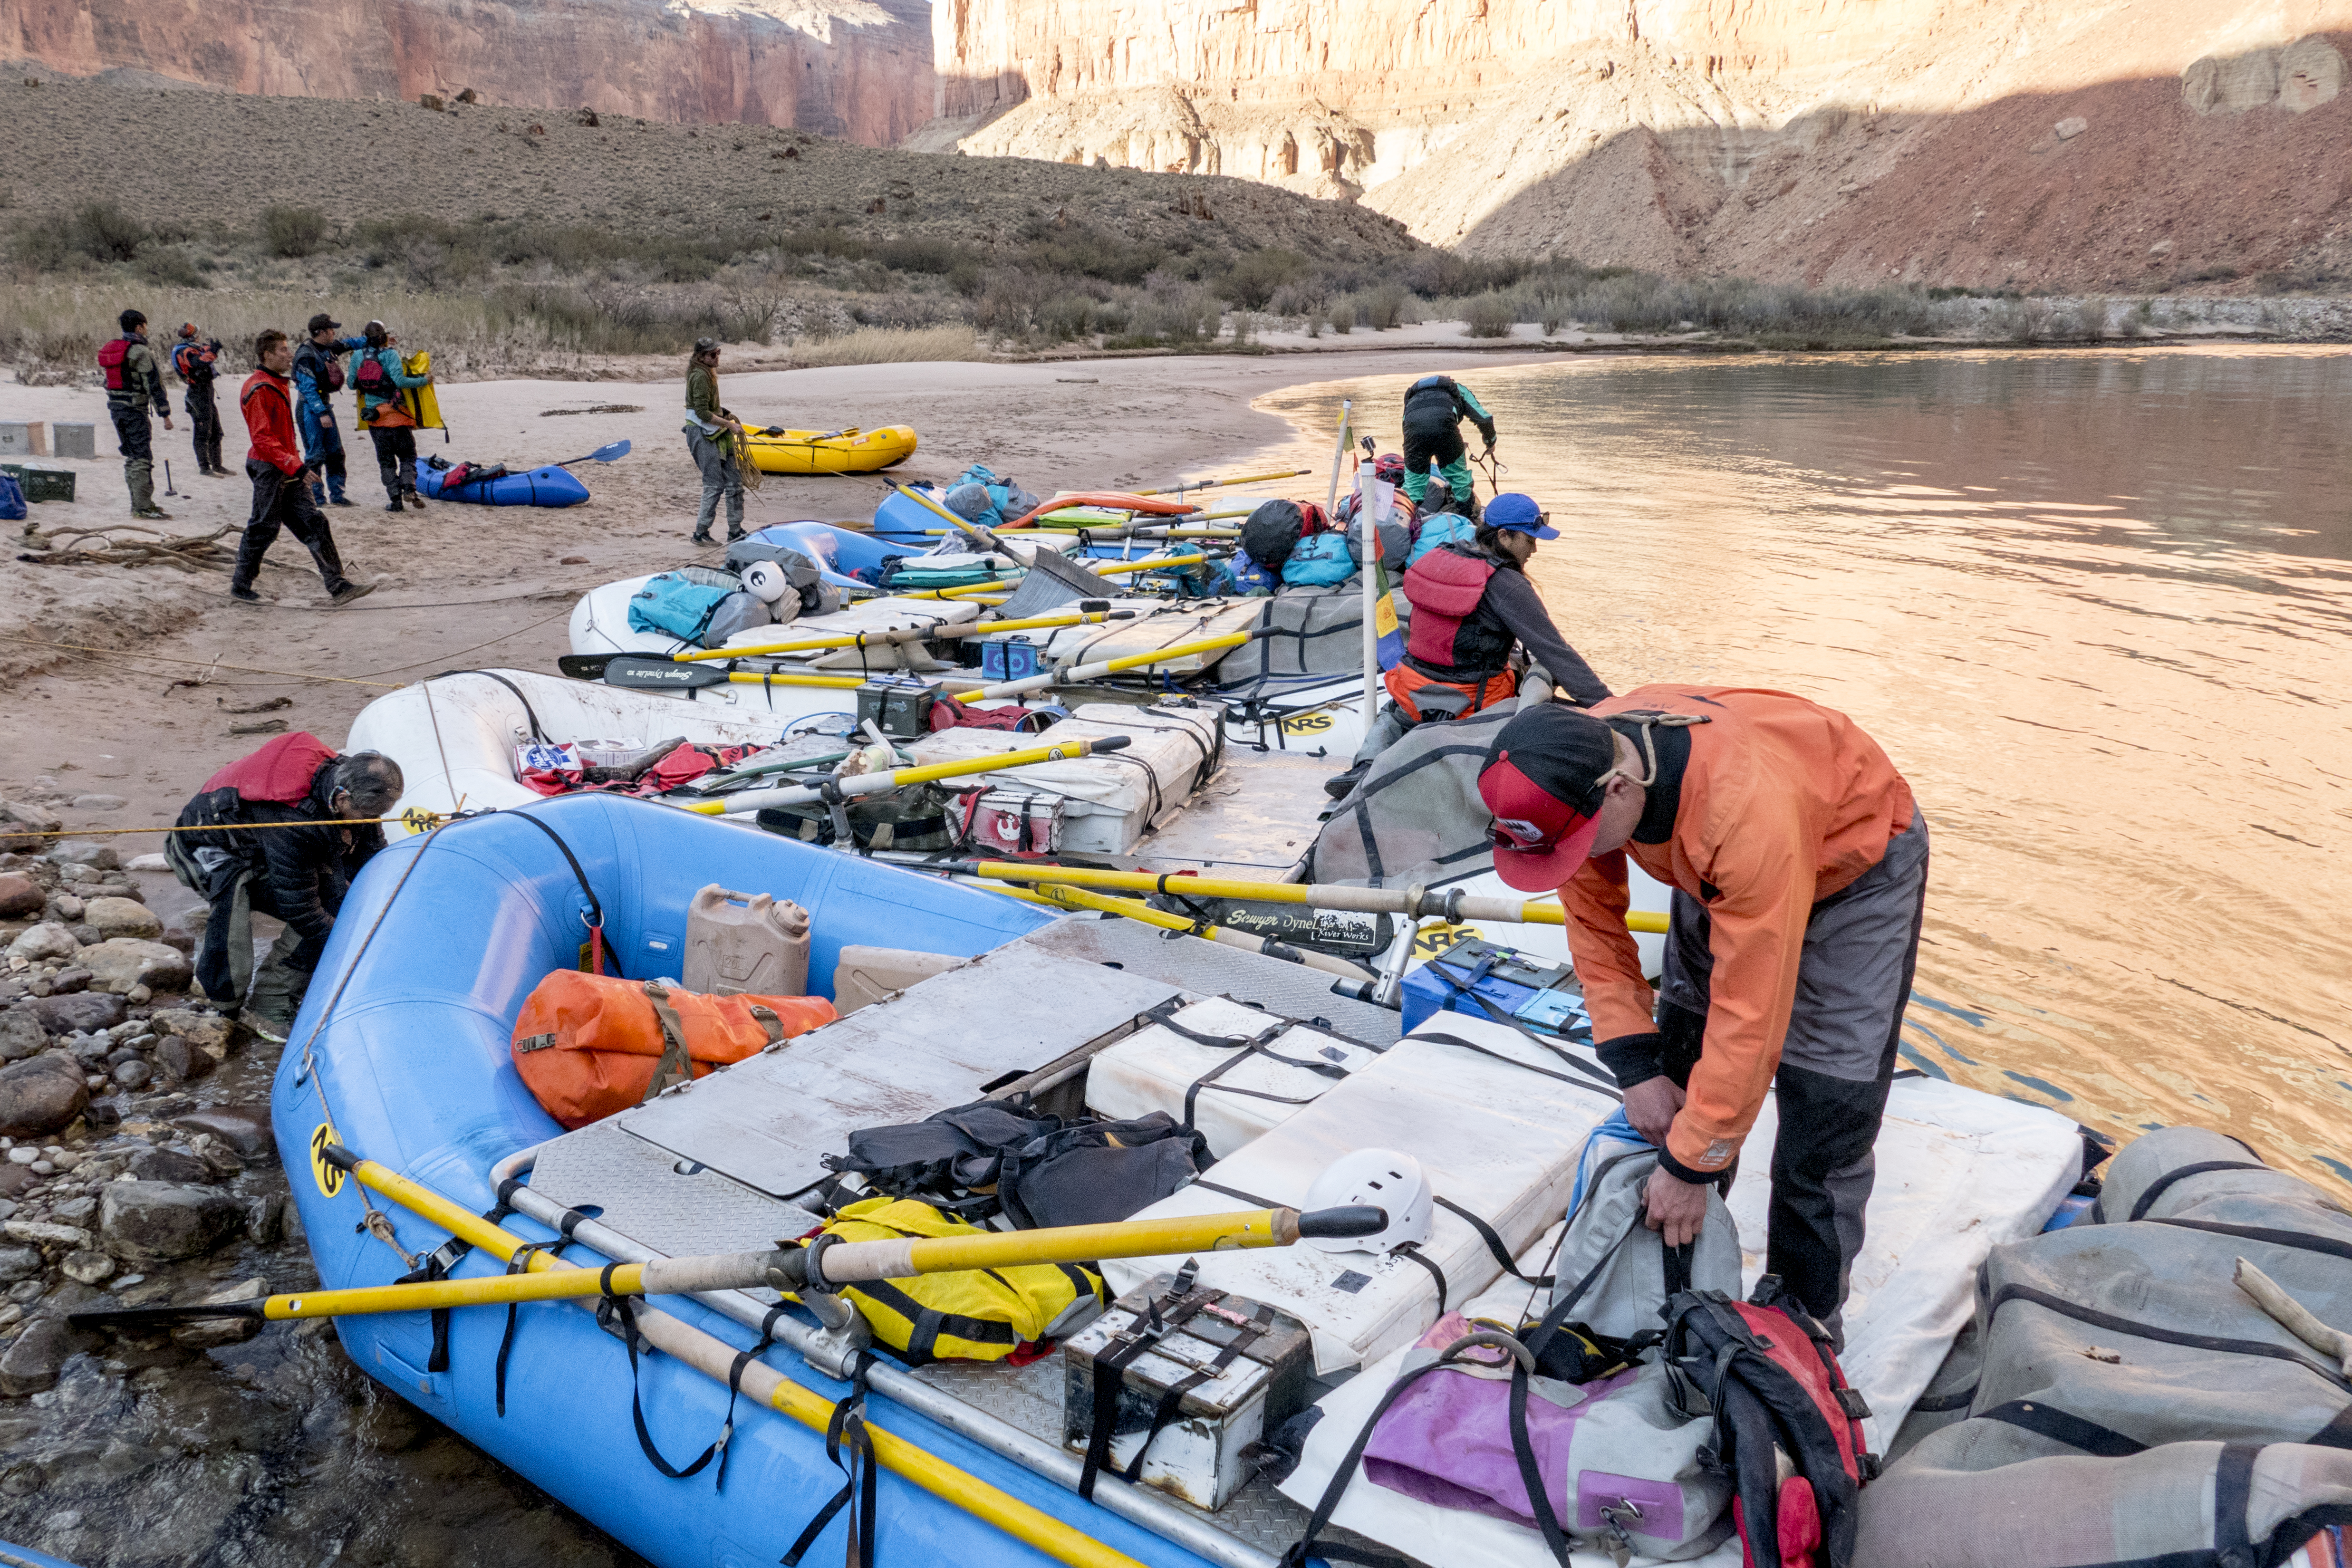 Caroling the Grand Canyon: How to Survive the Great Ditch in